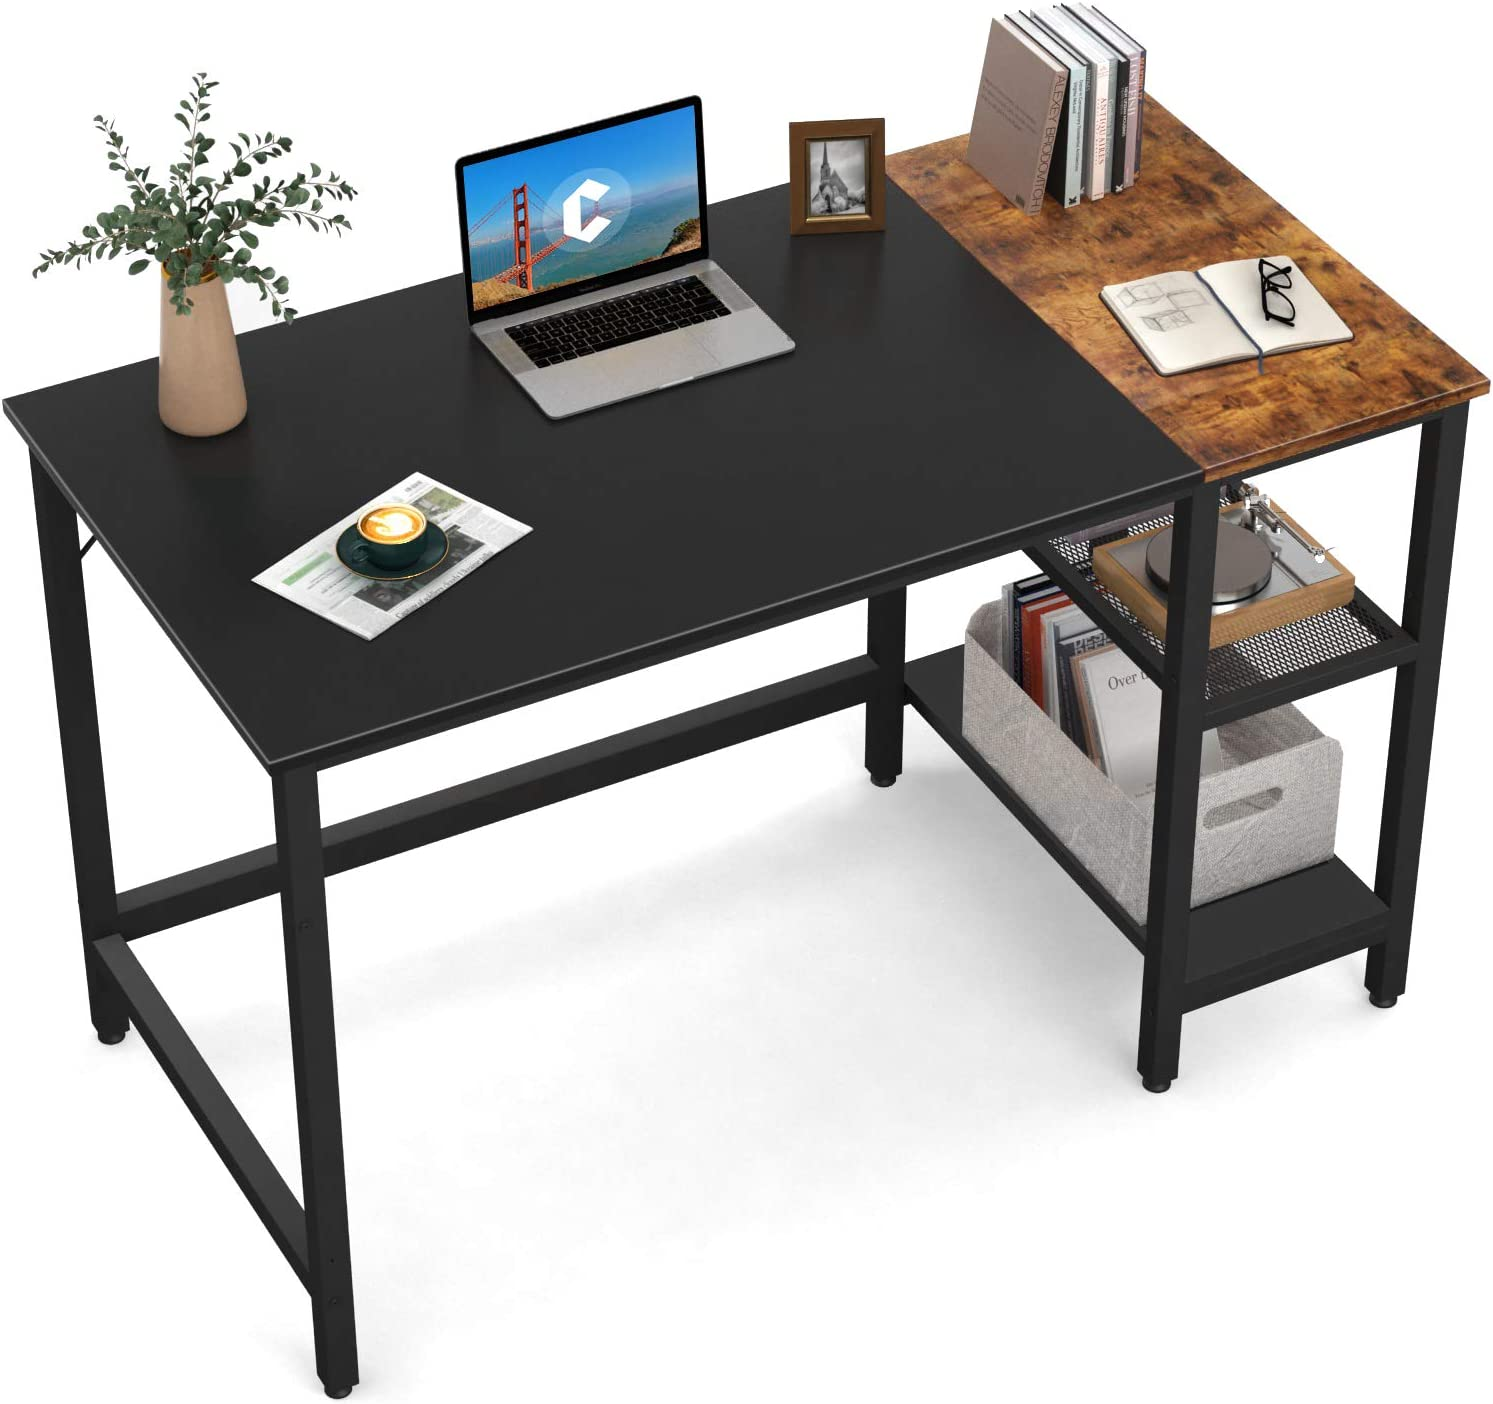 CubiCubi Computer Home Office Desk, 40 Inch Small Desk Study Writing Table with Storage Shelves, Modern Simple PC Desk with Splice Board, Black and Rustic Brown